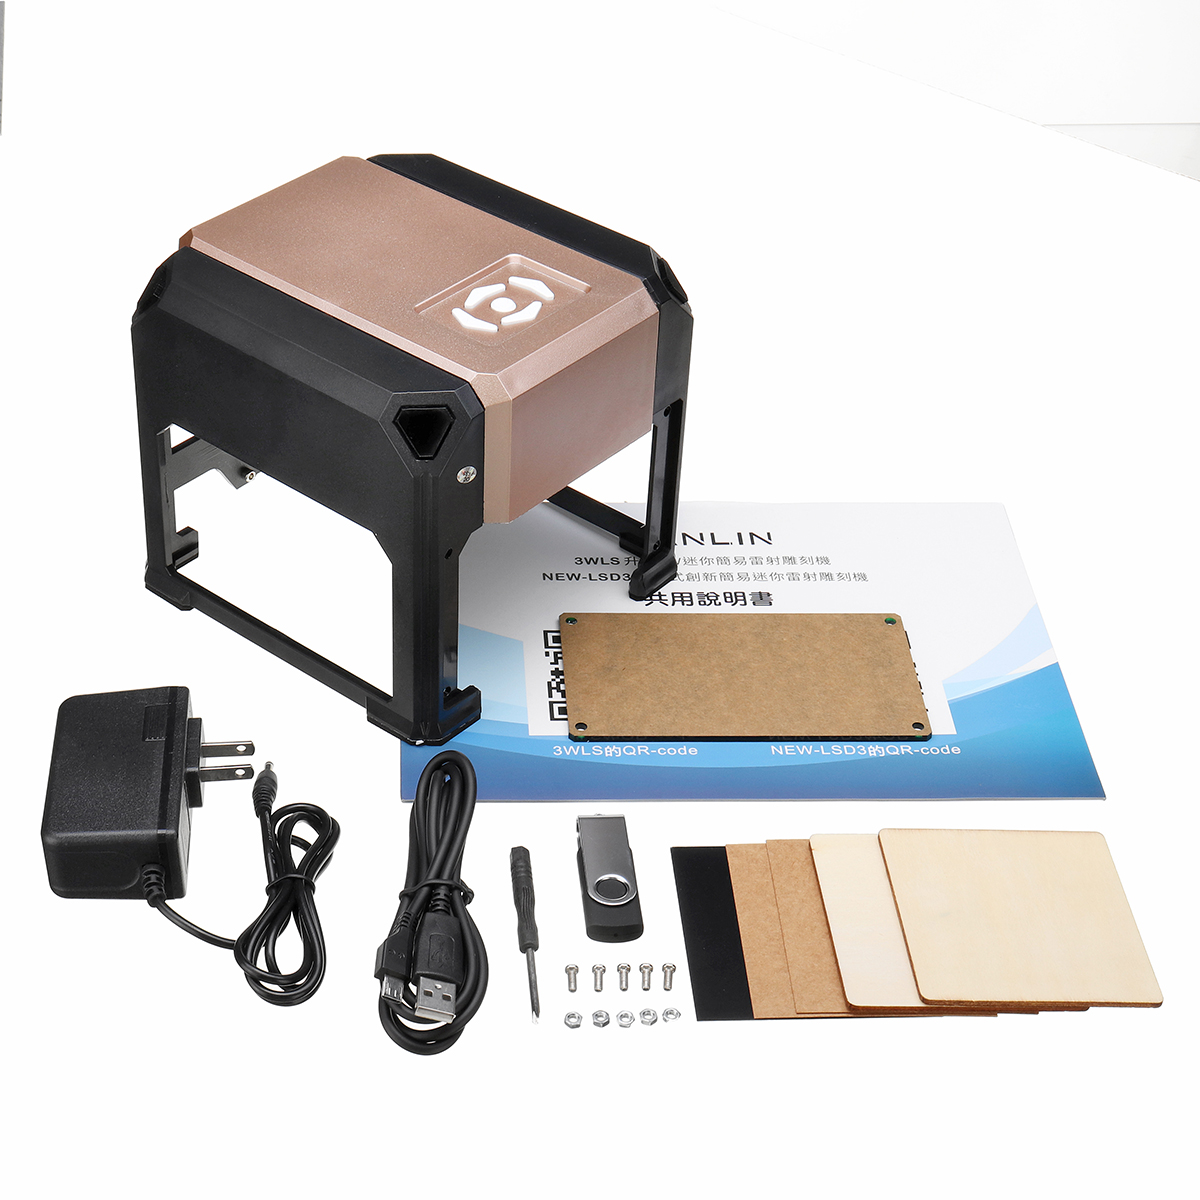 3000mW USB Laser Marking Machine Made With ABS And Aluminium Alloy Material 5